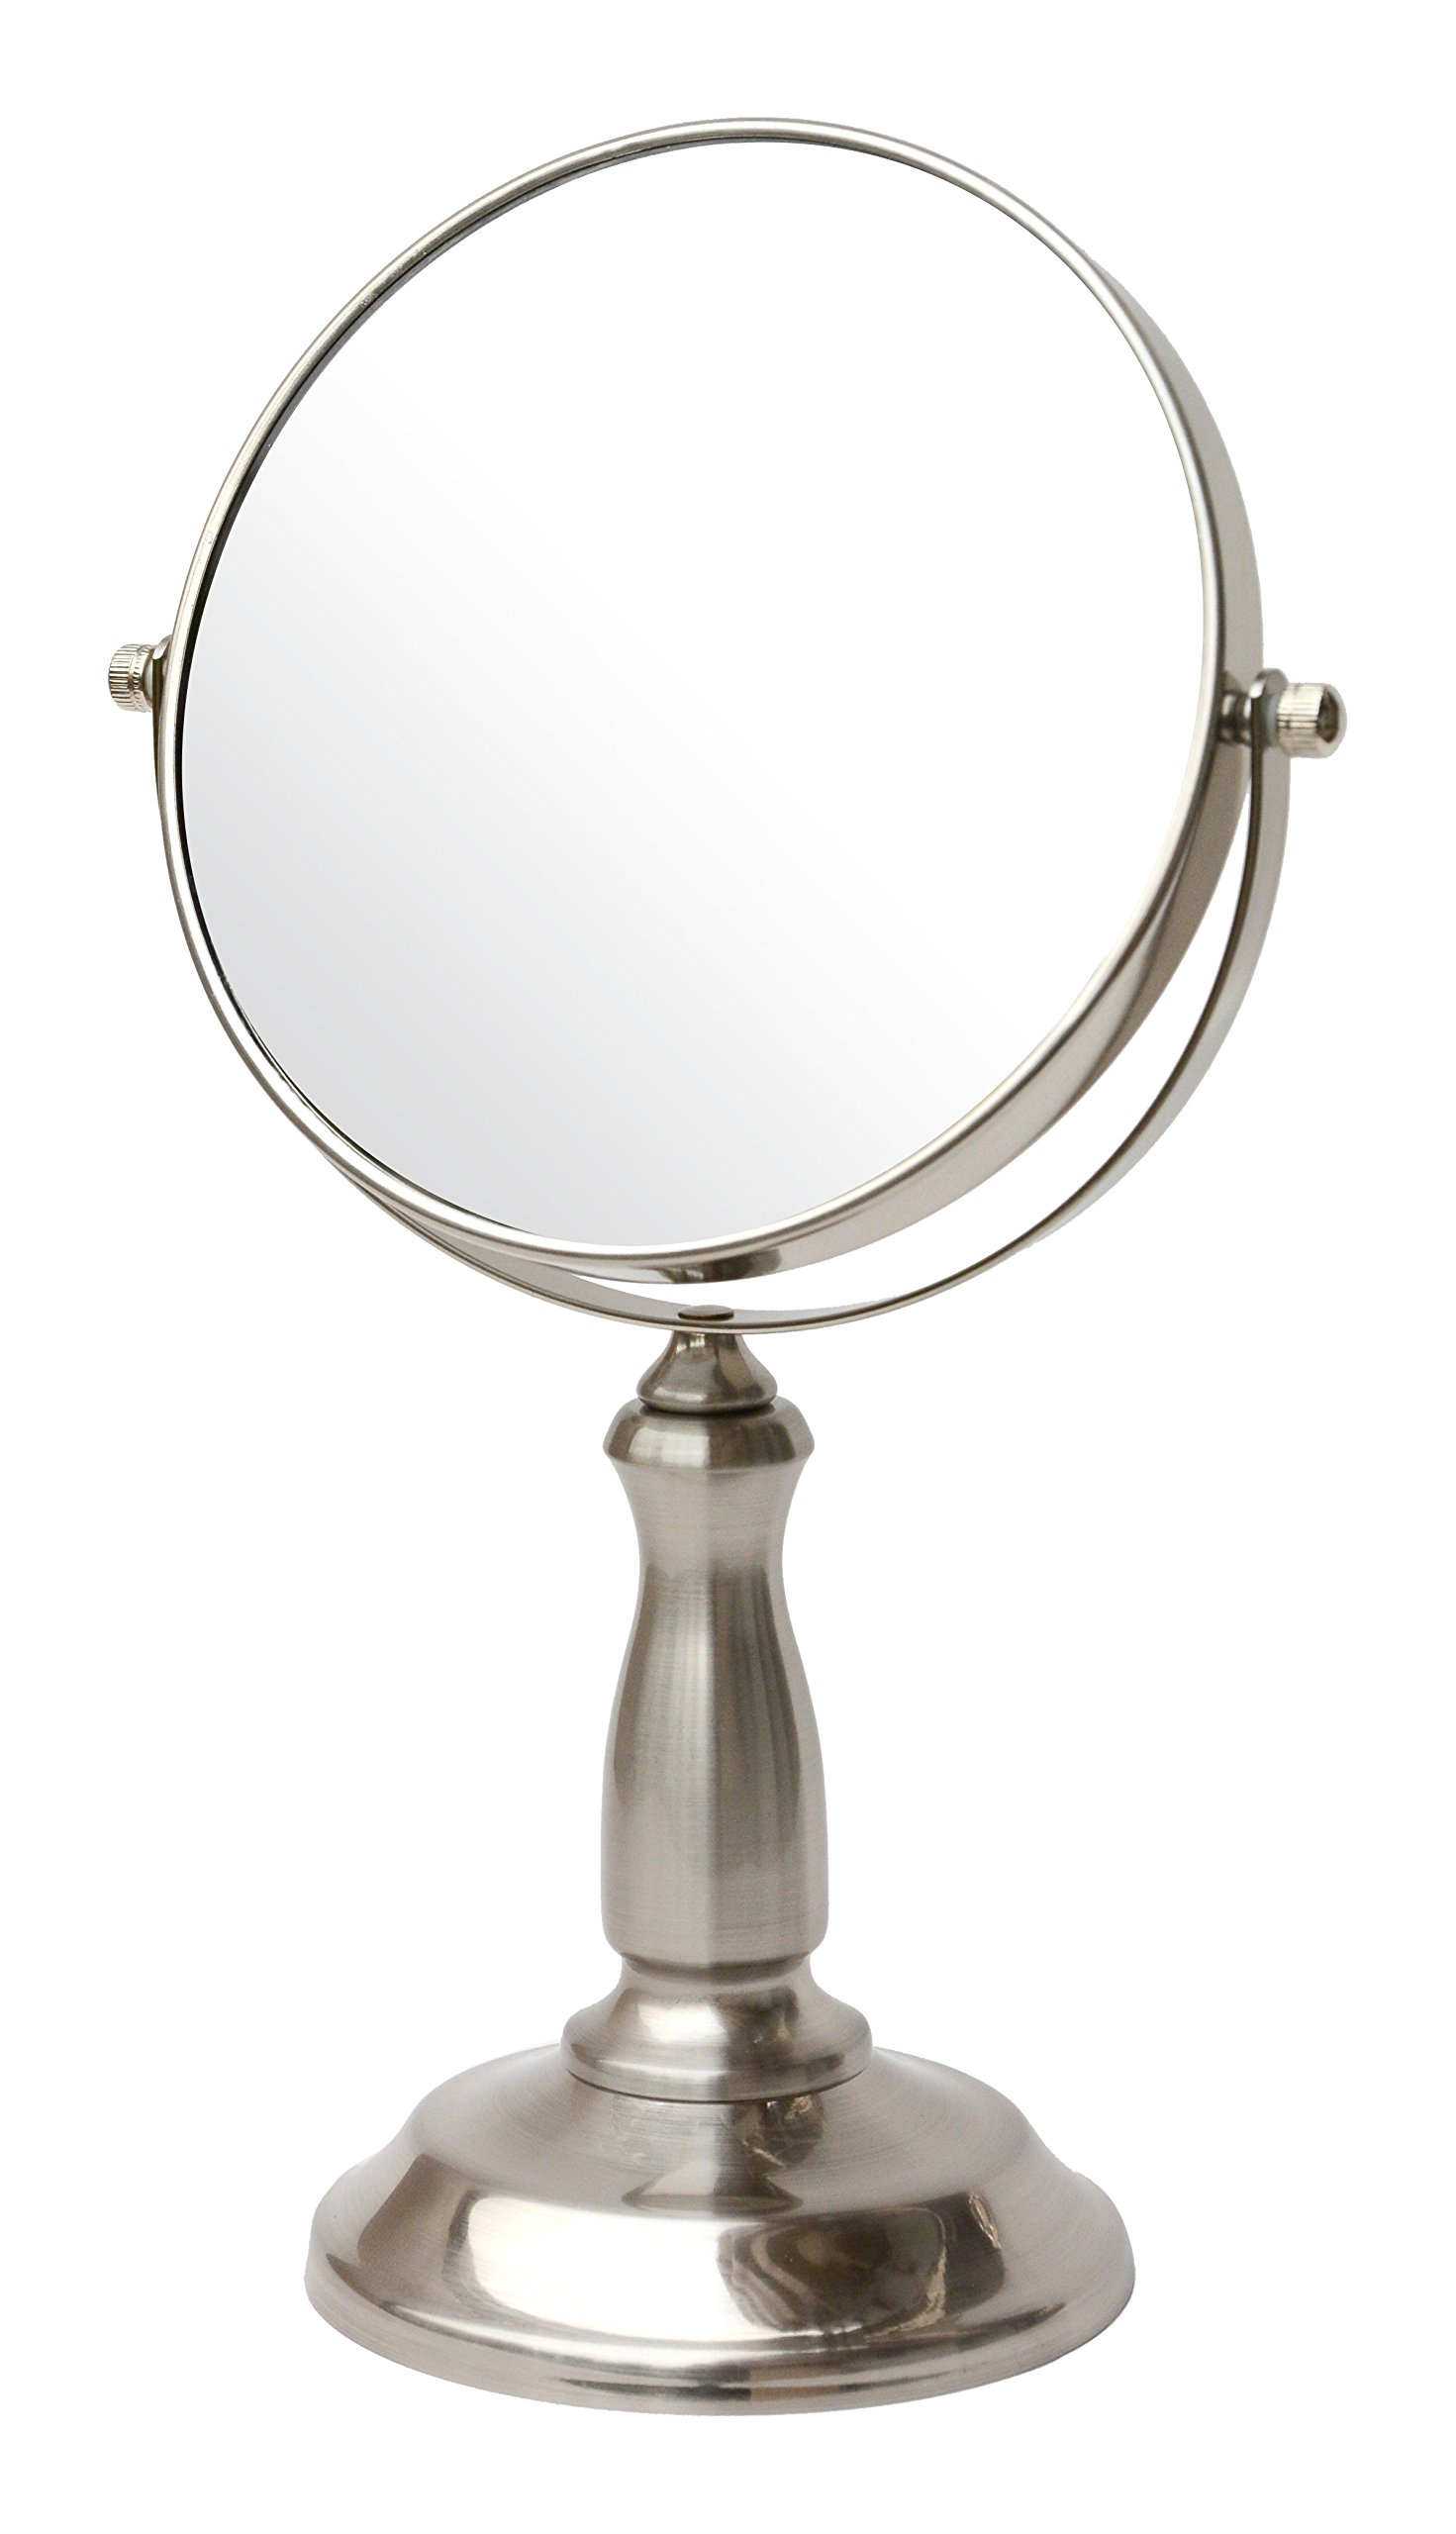 BathSense VAN1290SAT Pedestal Vanity Circular Tilting Bathroom Mirror, Satin Nickel by BathSense